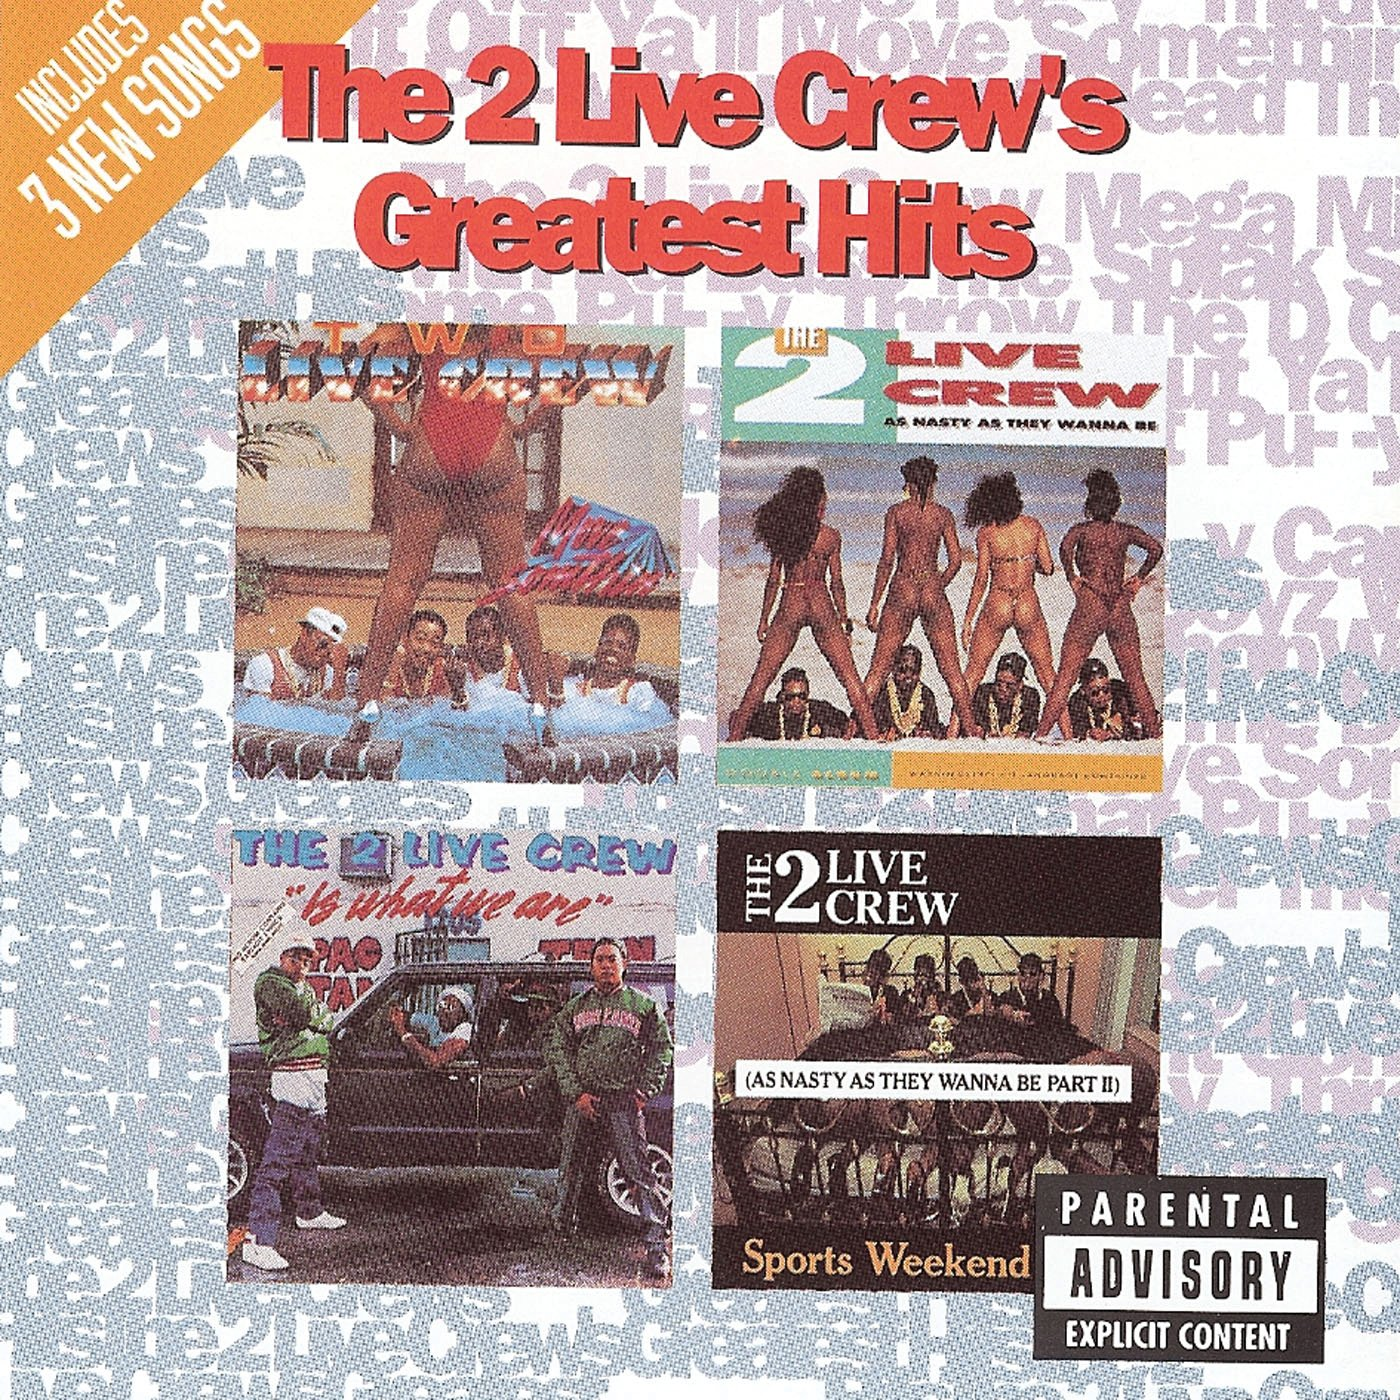 Two Live Crew - Greatest Hits by Luke